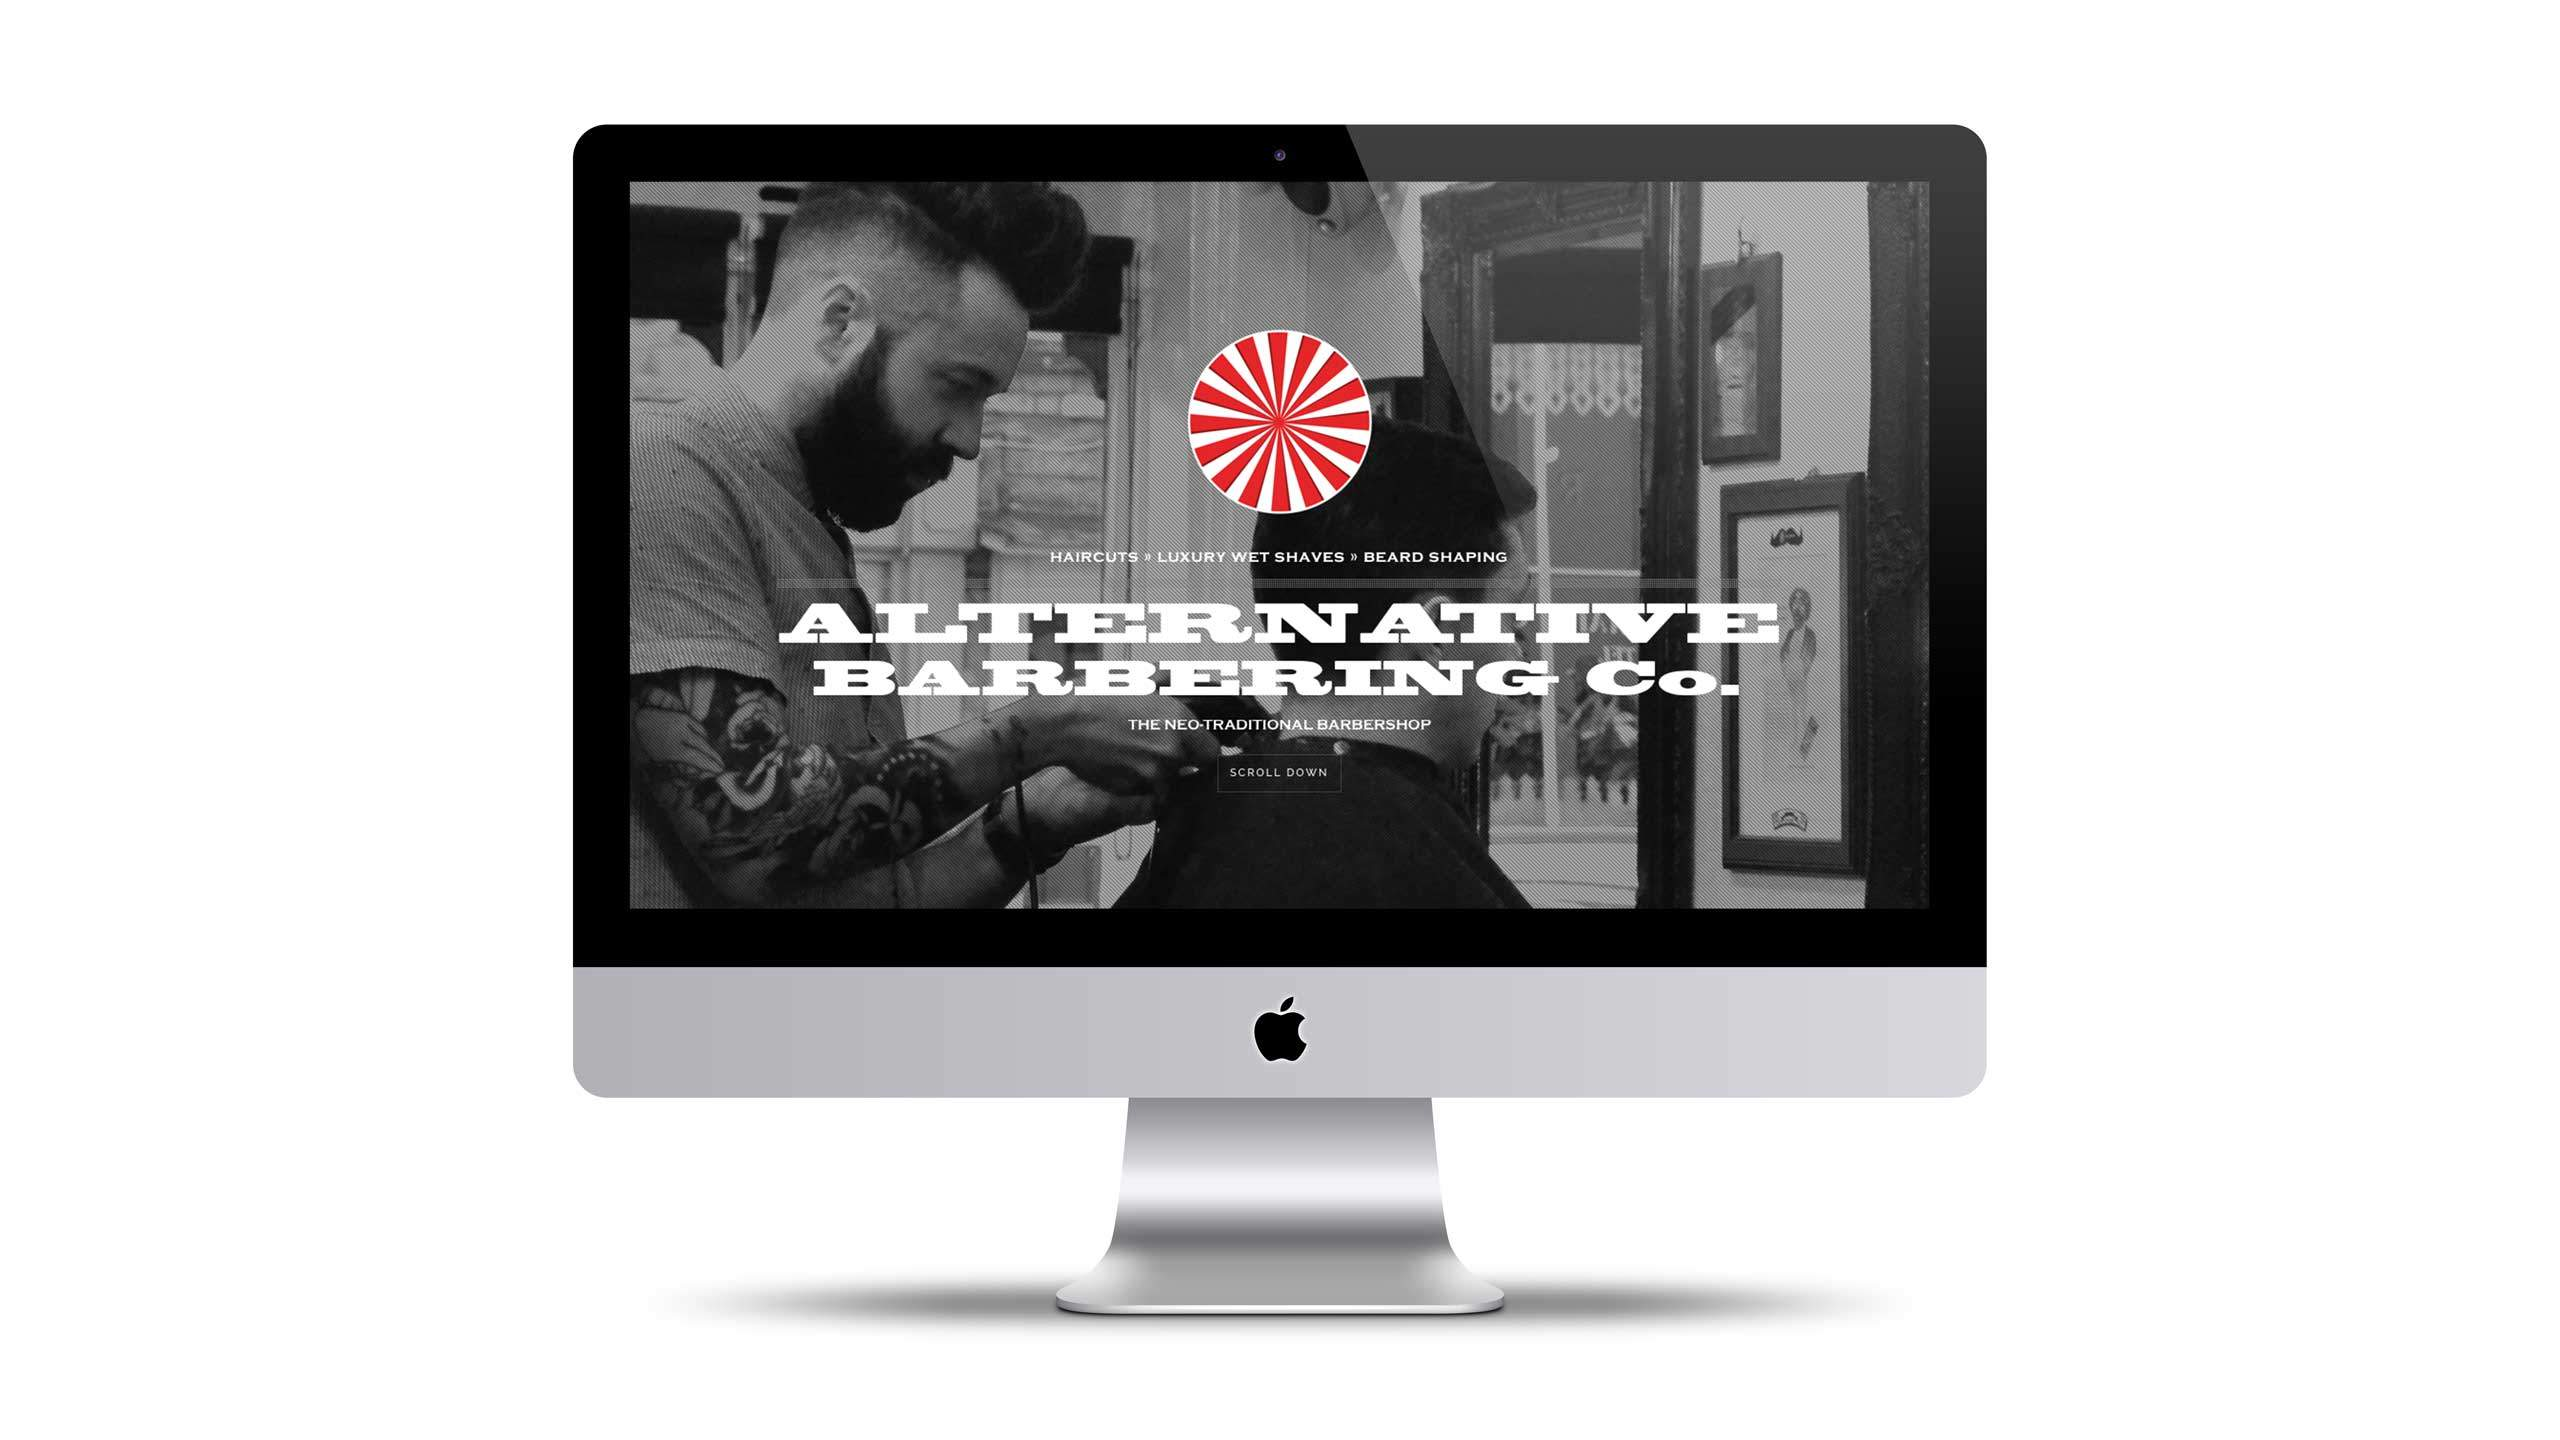 barbershop website design home page imac alternative barbering co